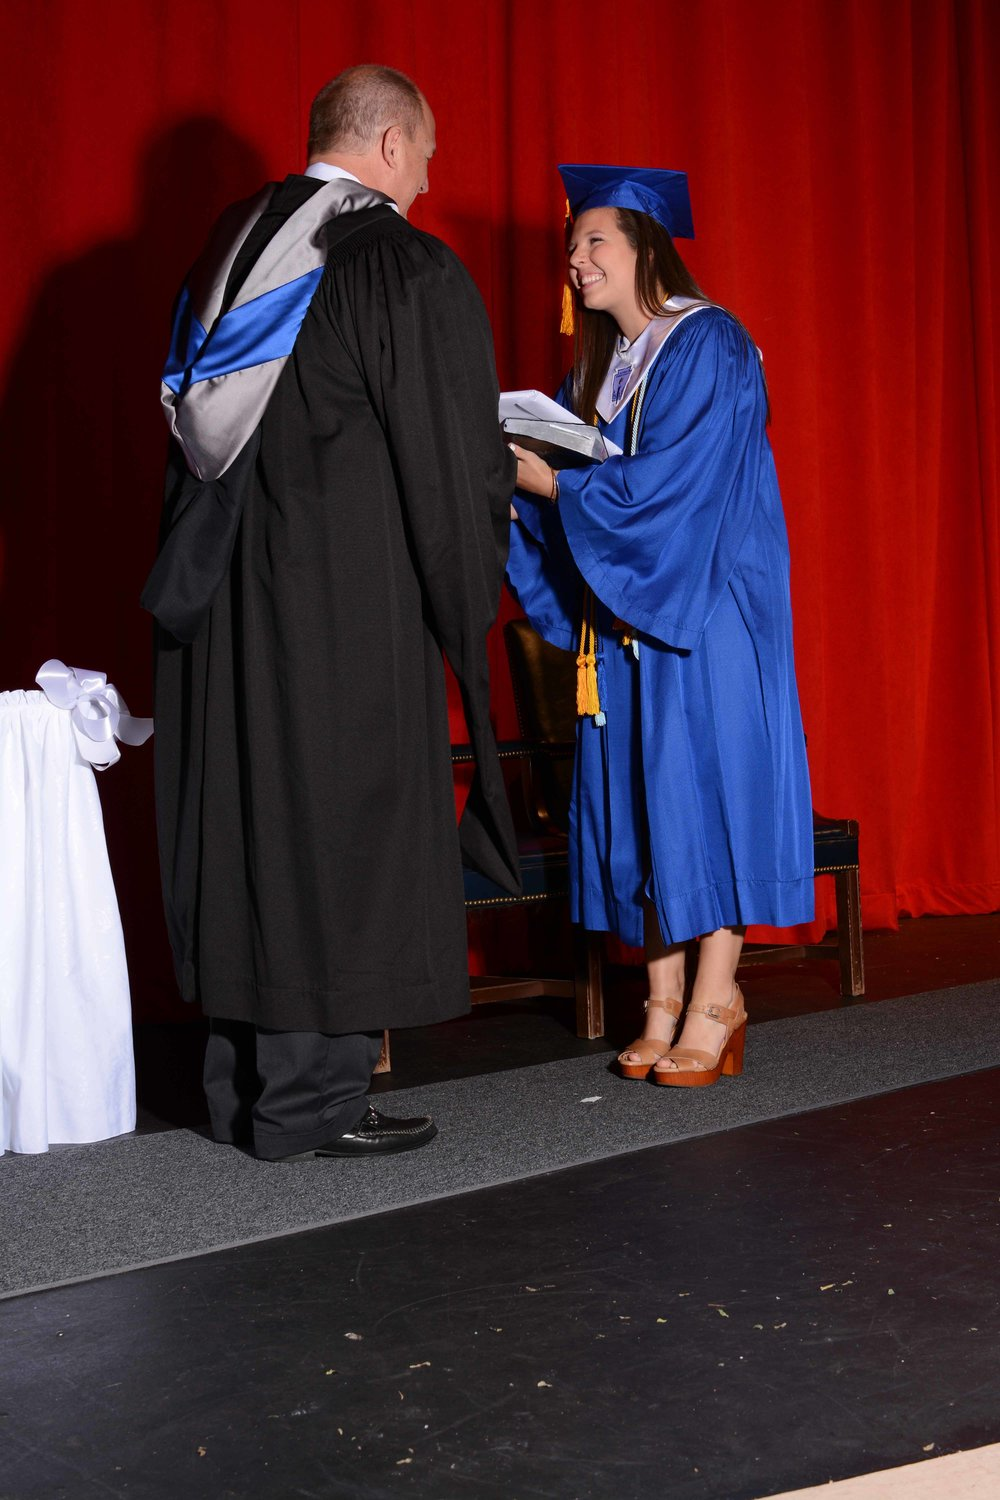 May15 HardingGraduation74.jpg